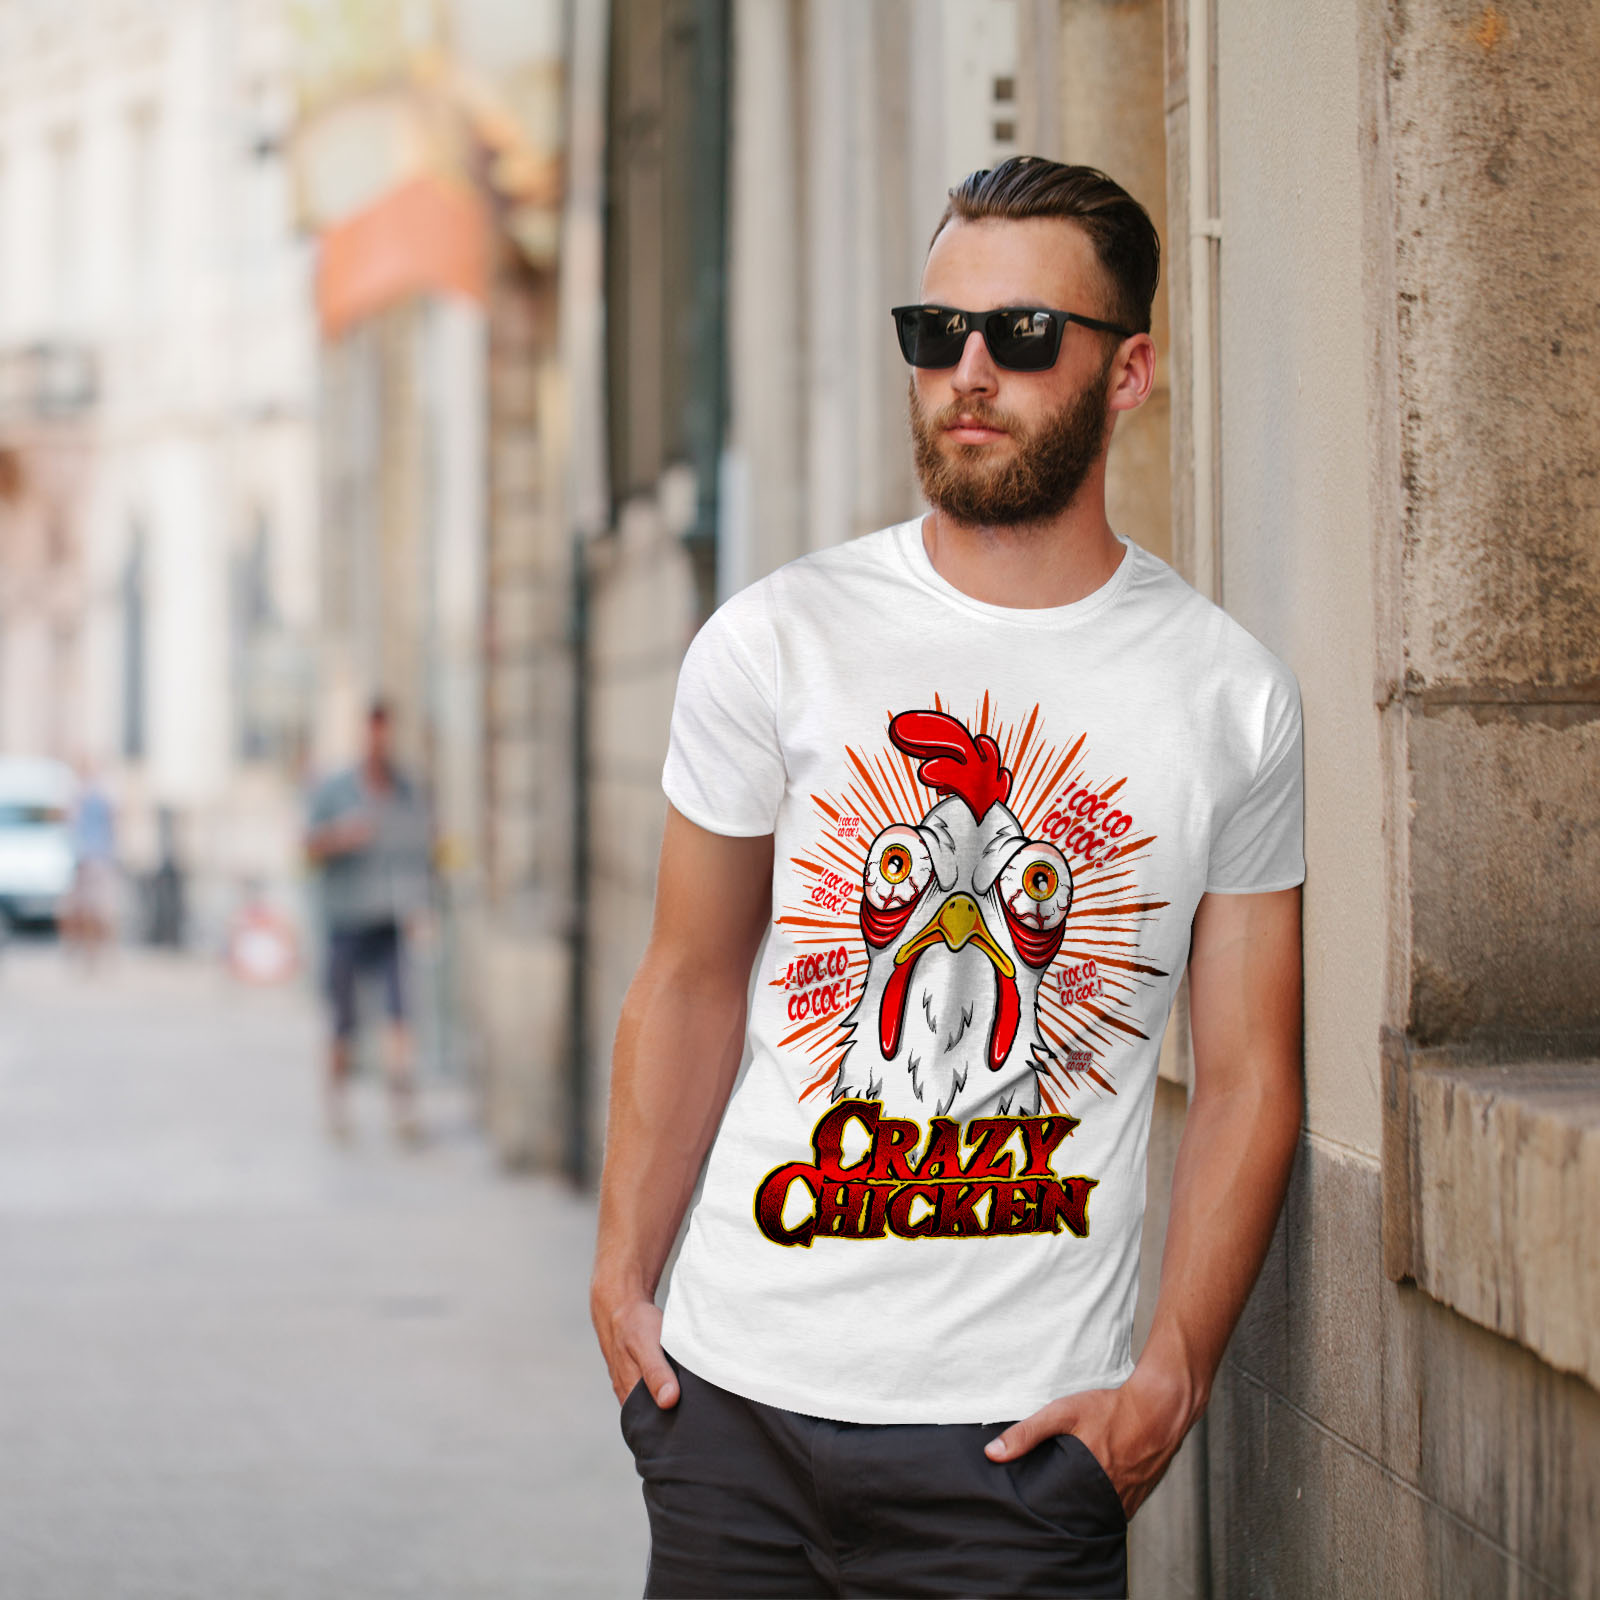 thumbnail 11 - Wellcoda-Crazy-Chicken-Mens-T-shirt-Funny-Face-Graphic-Design-Printed-Tee